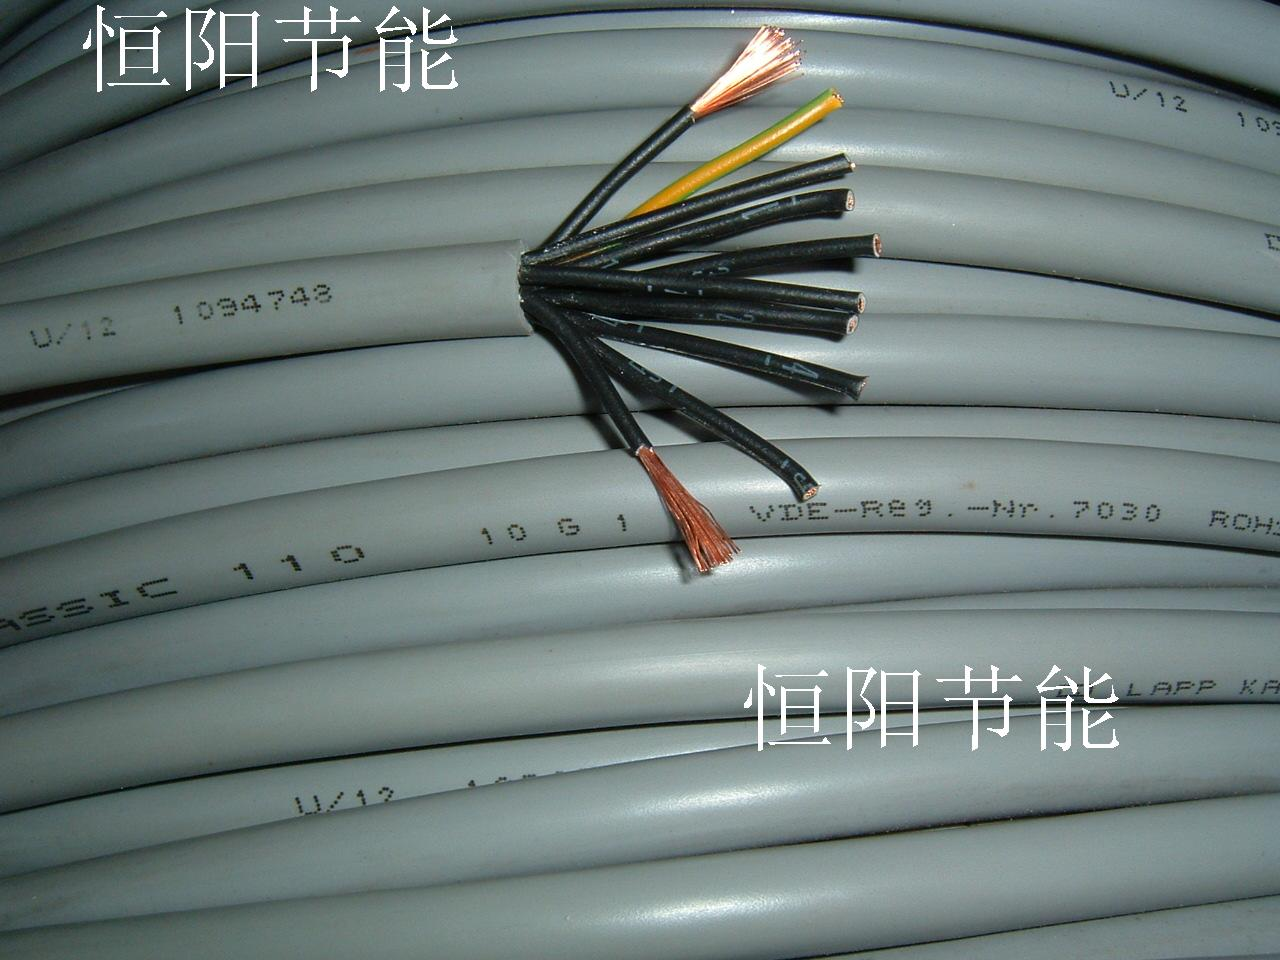 Olflex Wire & Cable Inc | Usd 10 01 Germany Cable Pu Lapp Kabel Olflex Cable 10 Core 1 Square